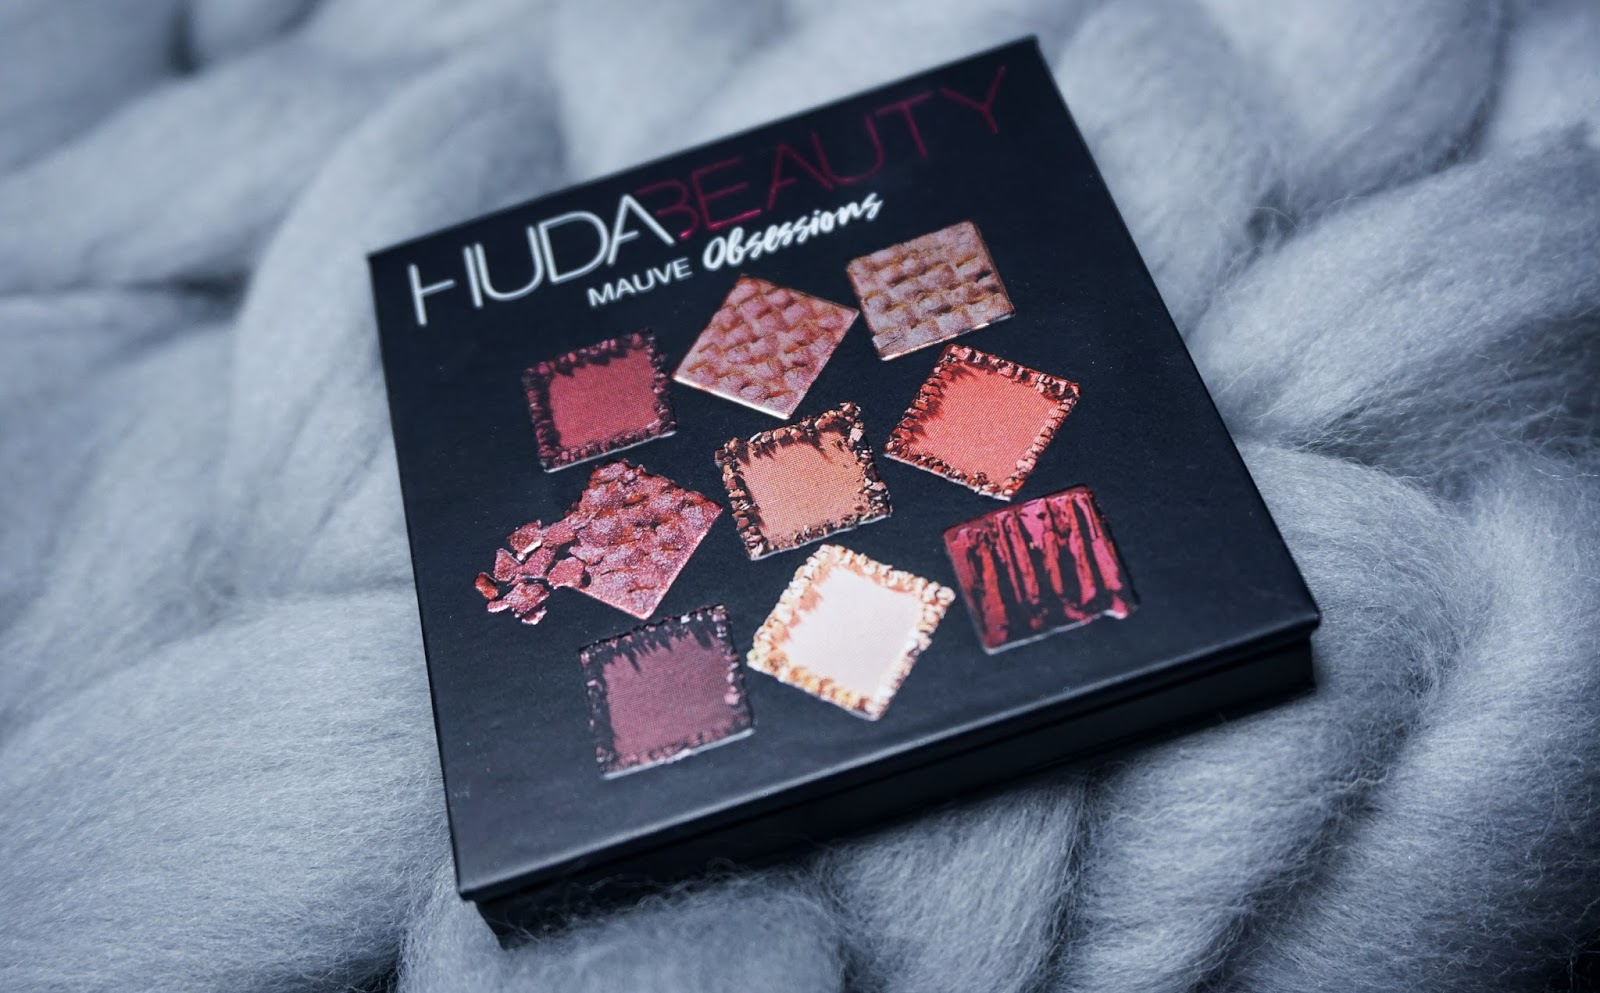 MAUVE OBSESSIONS HUDA BEAUTY NEW SEPHORA